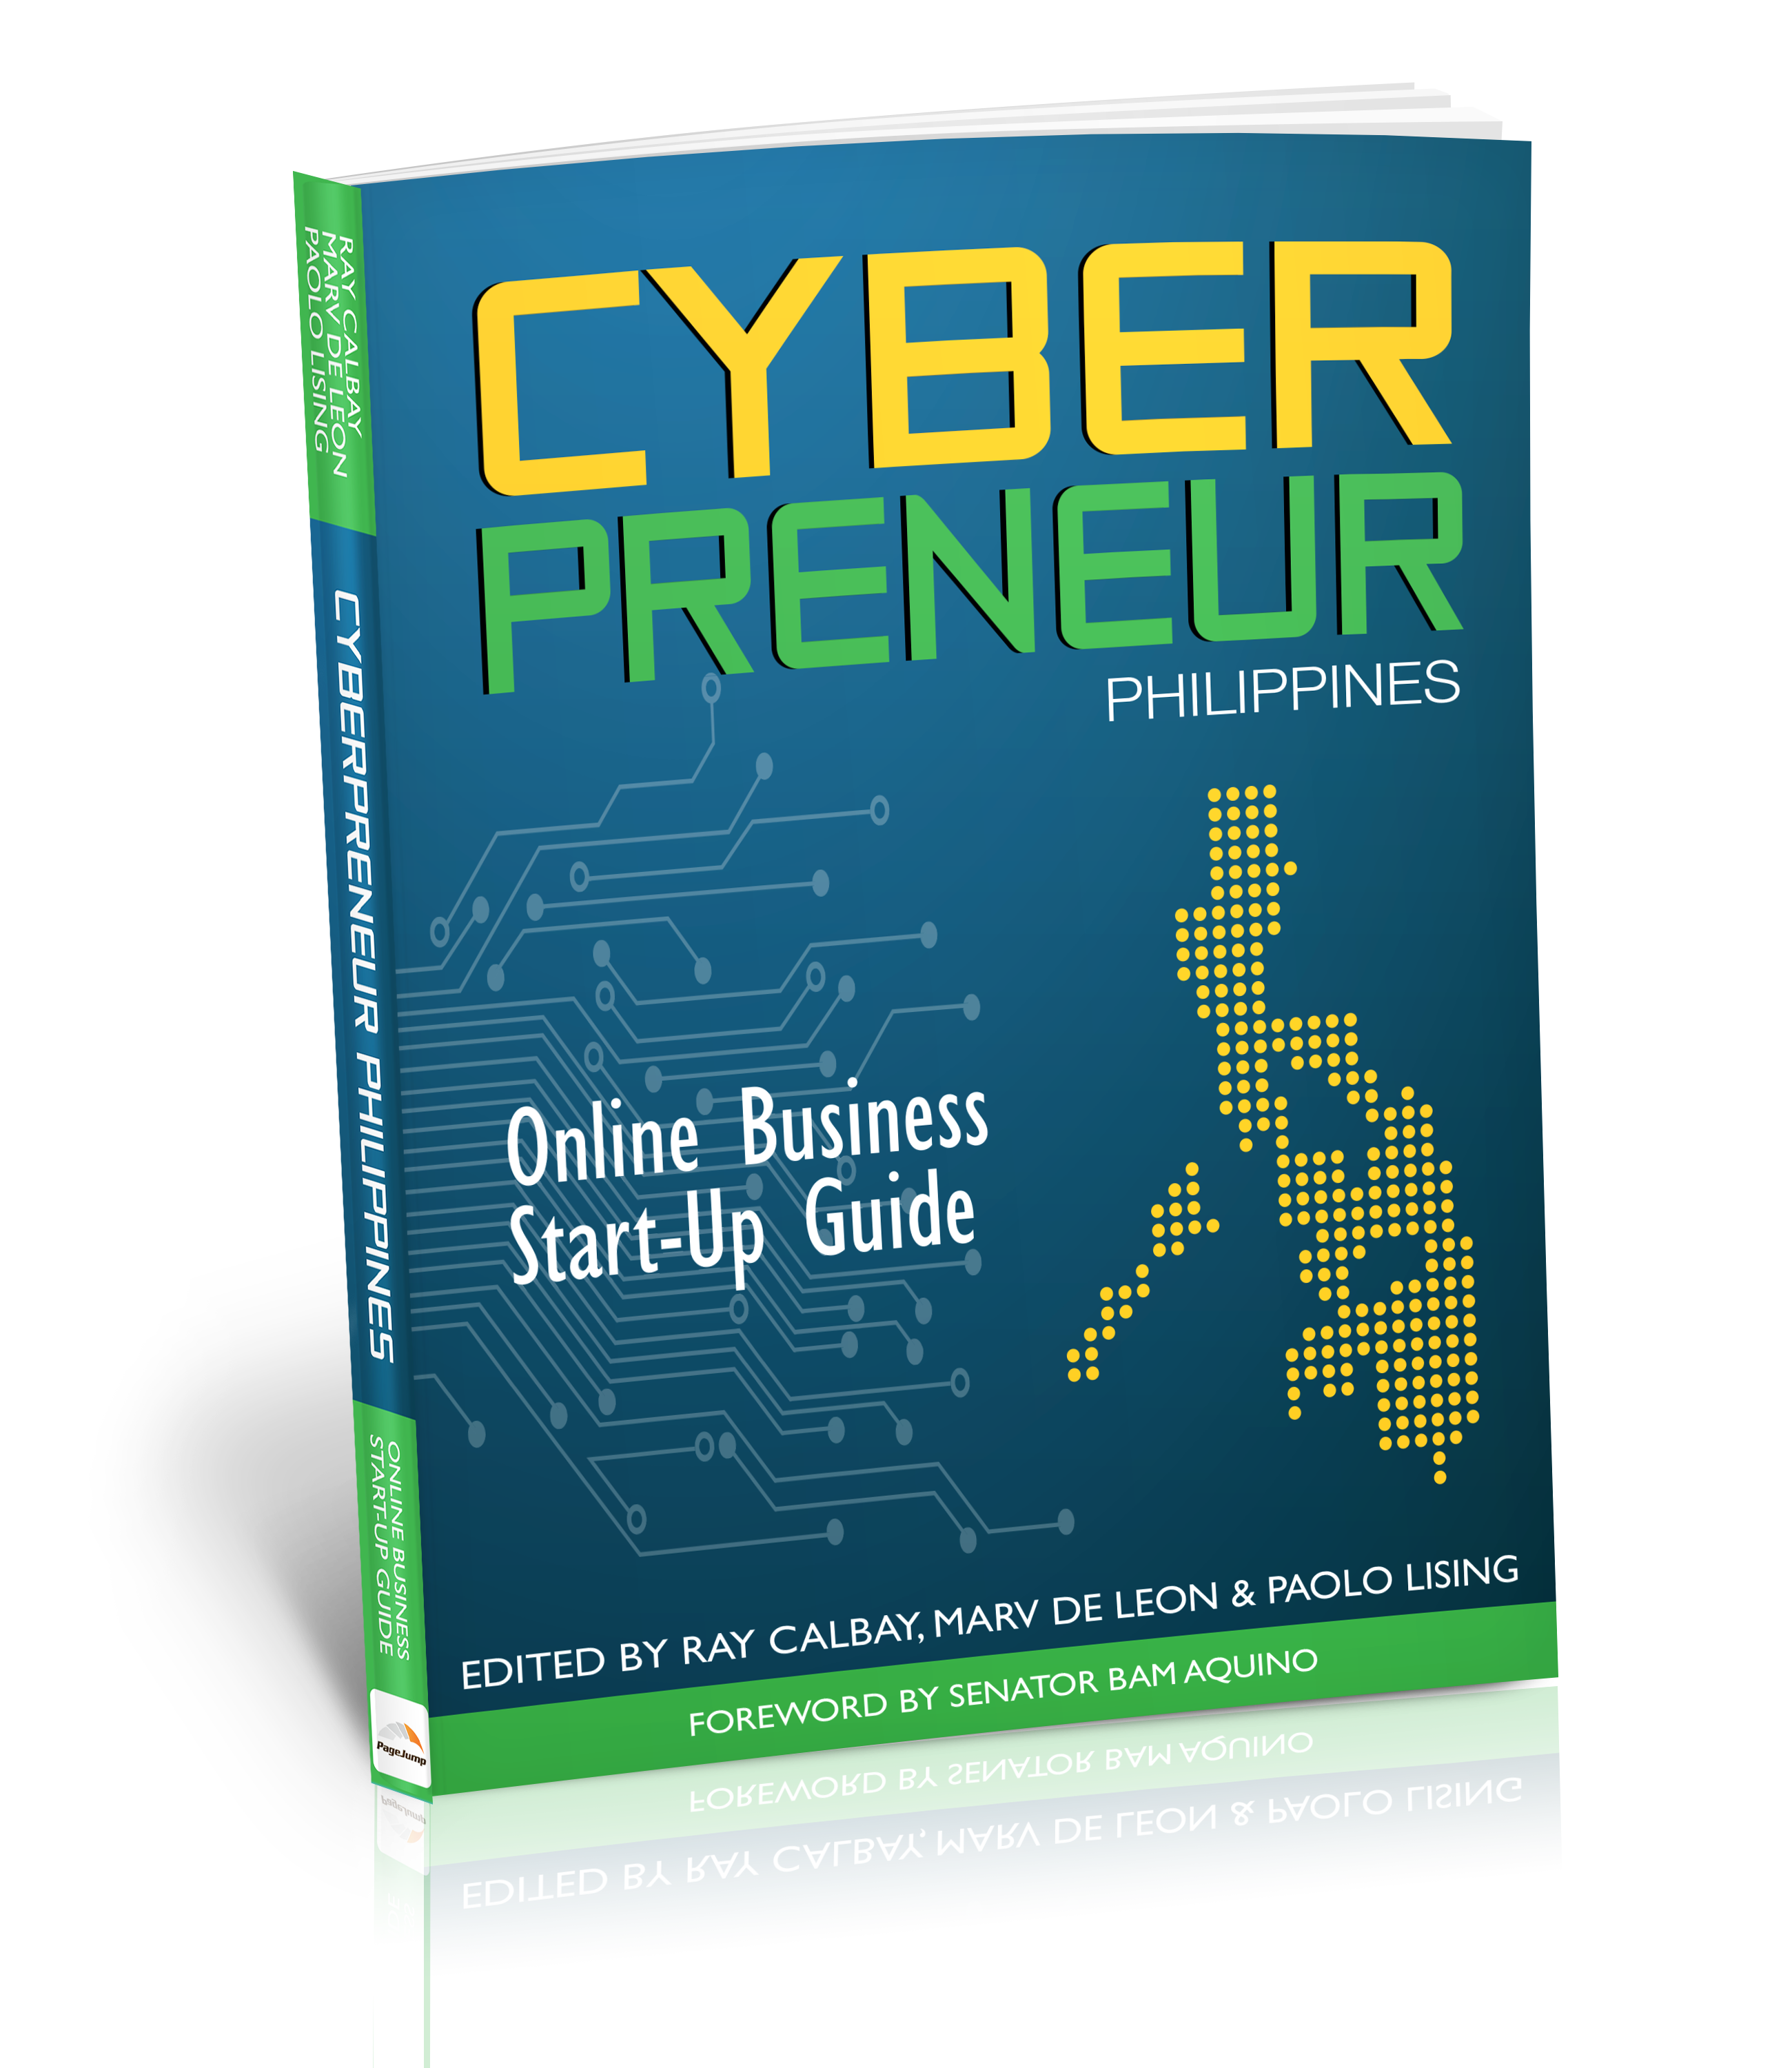 Cyberpreneur Philippines: The Online Business Start-Up Guide